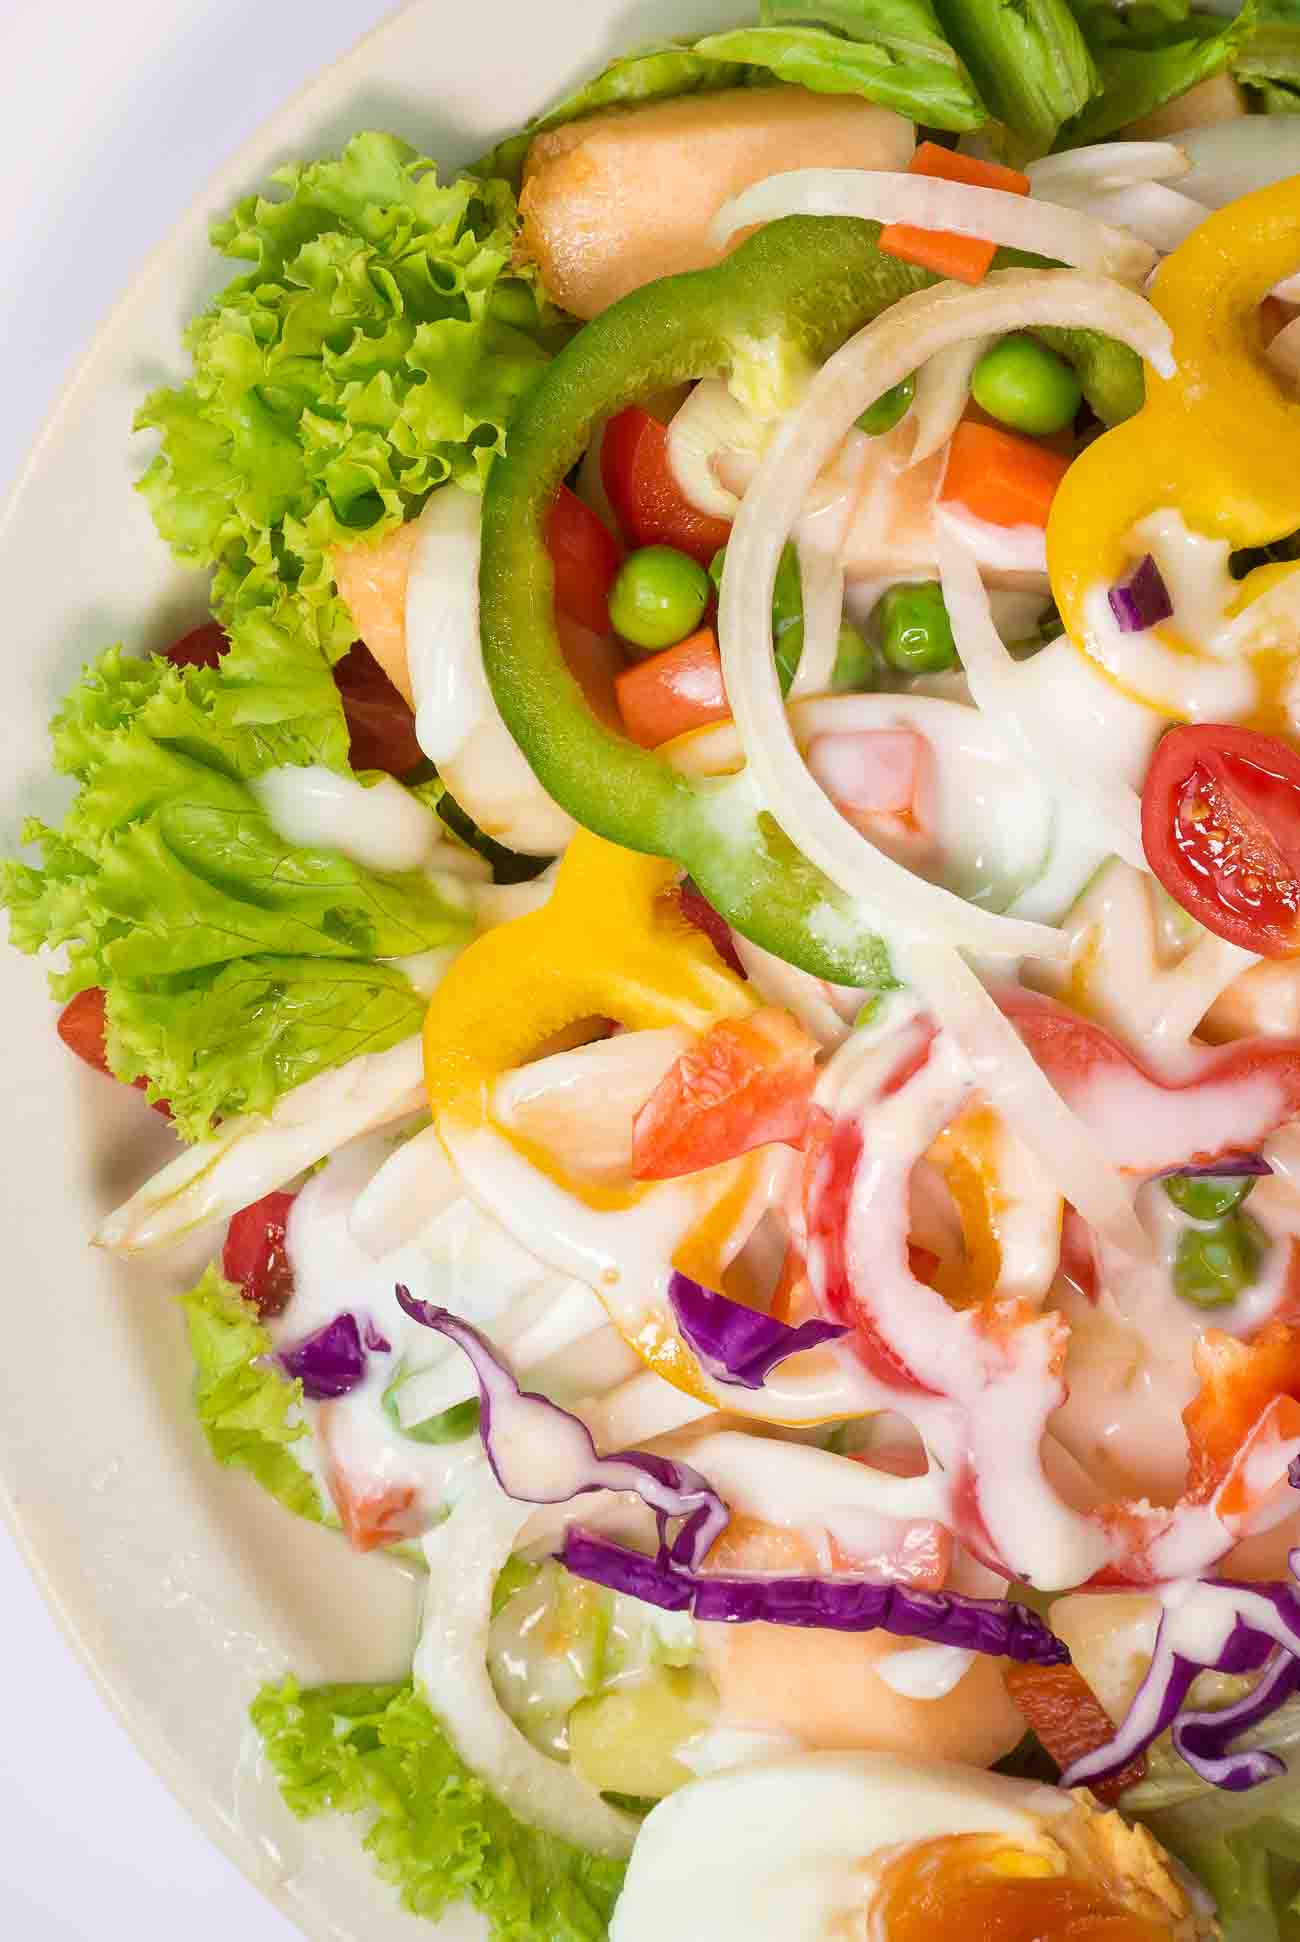 Summer Lettuce Salad Recipe by Archana's Kitchen